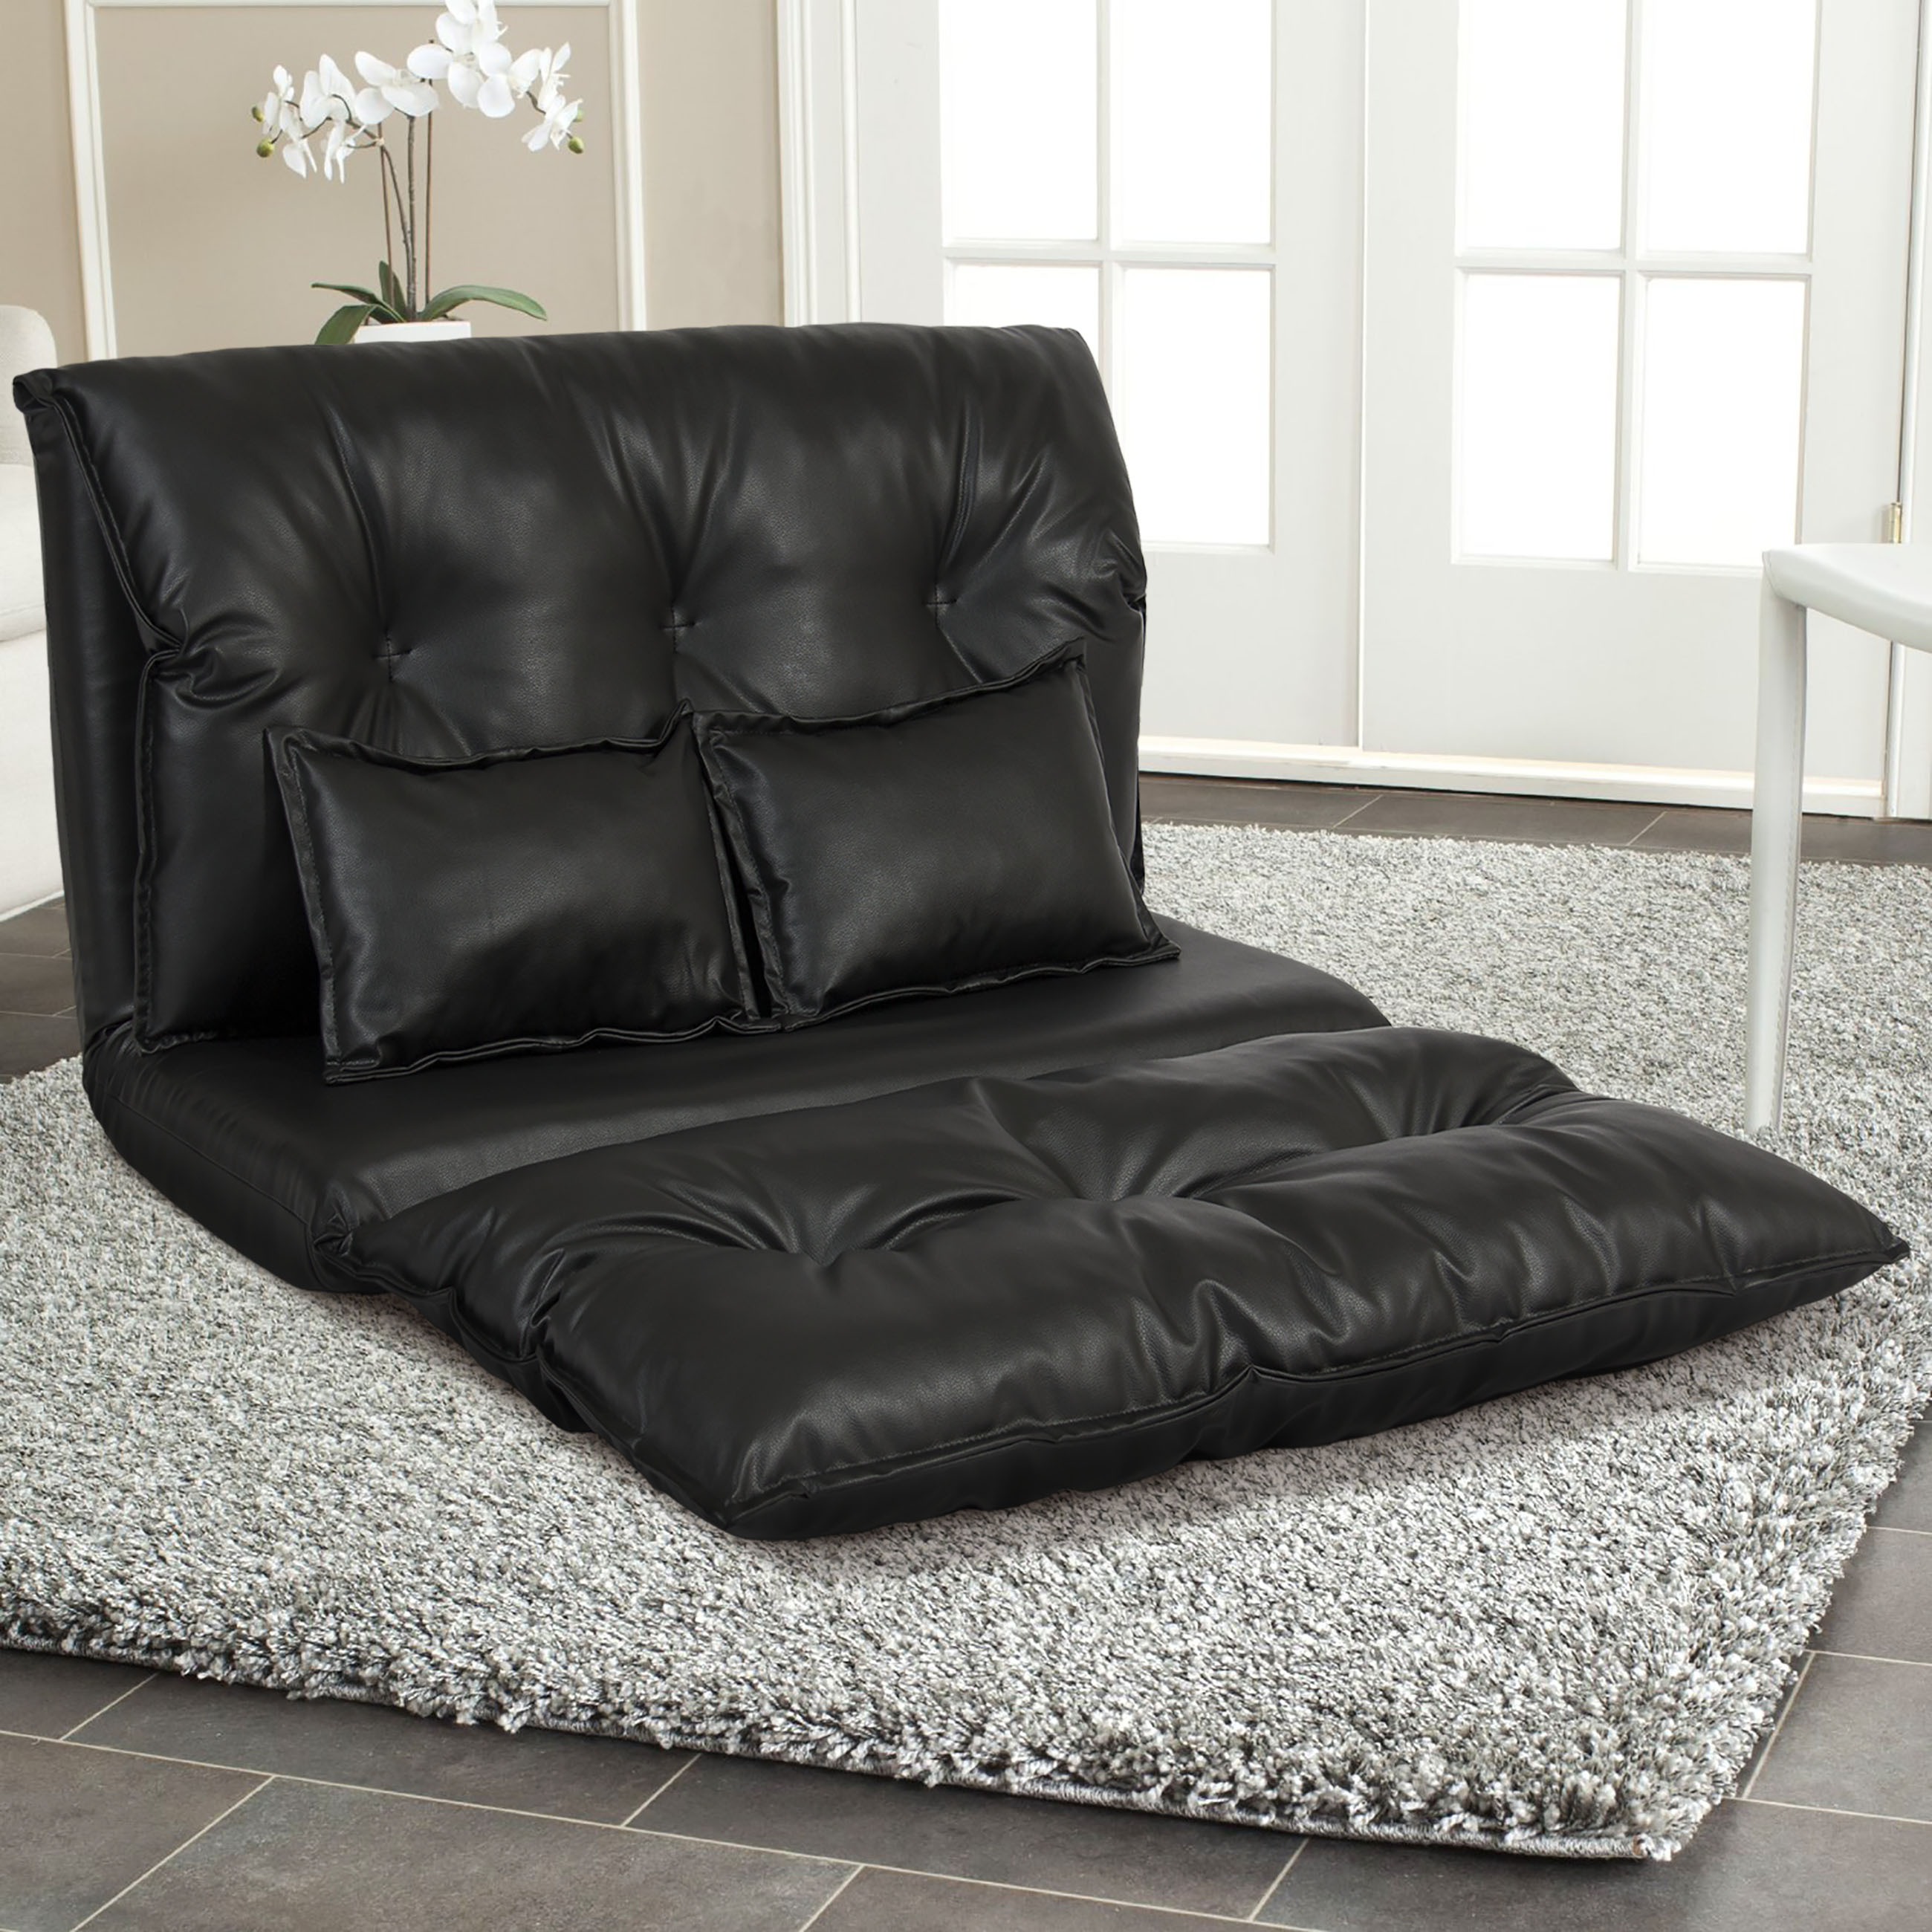 Folding Couch Chair Best Choice Products Faux Leather Folding Chaise Lounge